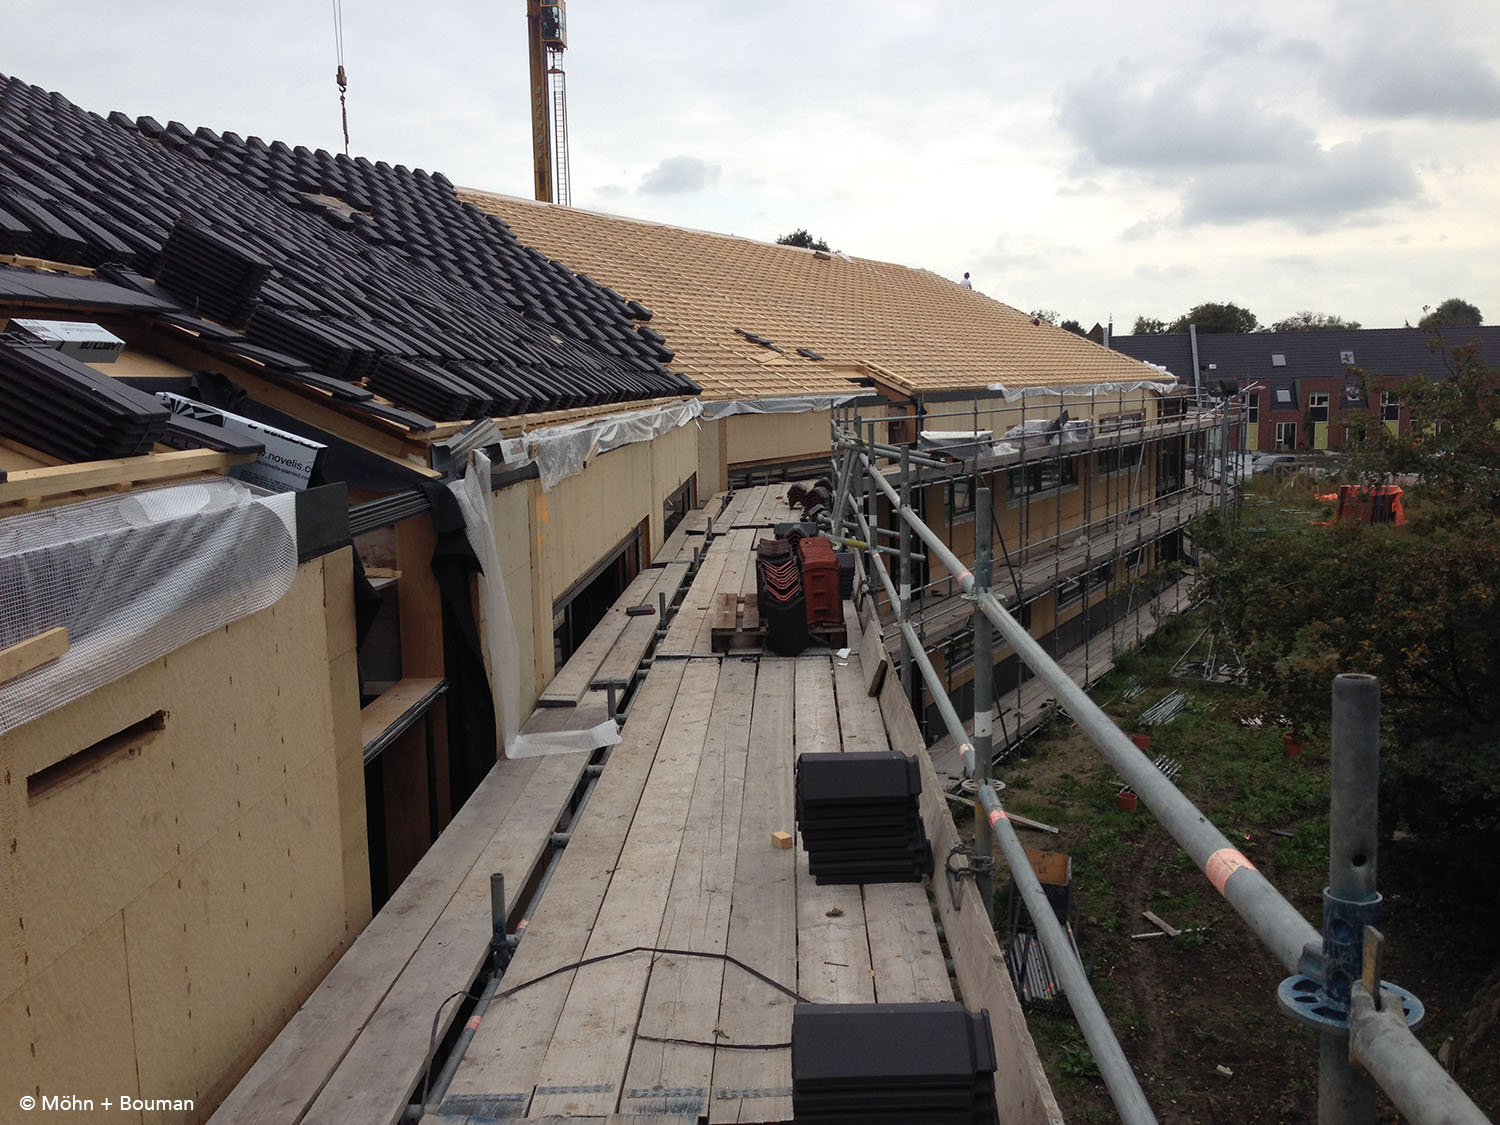 Pre-fabricated roof system and placing roof tiles Möhn + Bouman